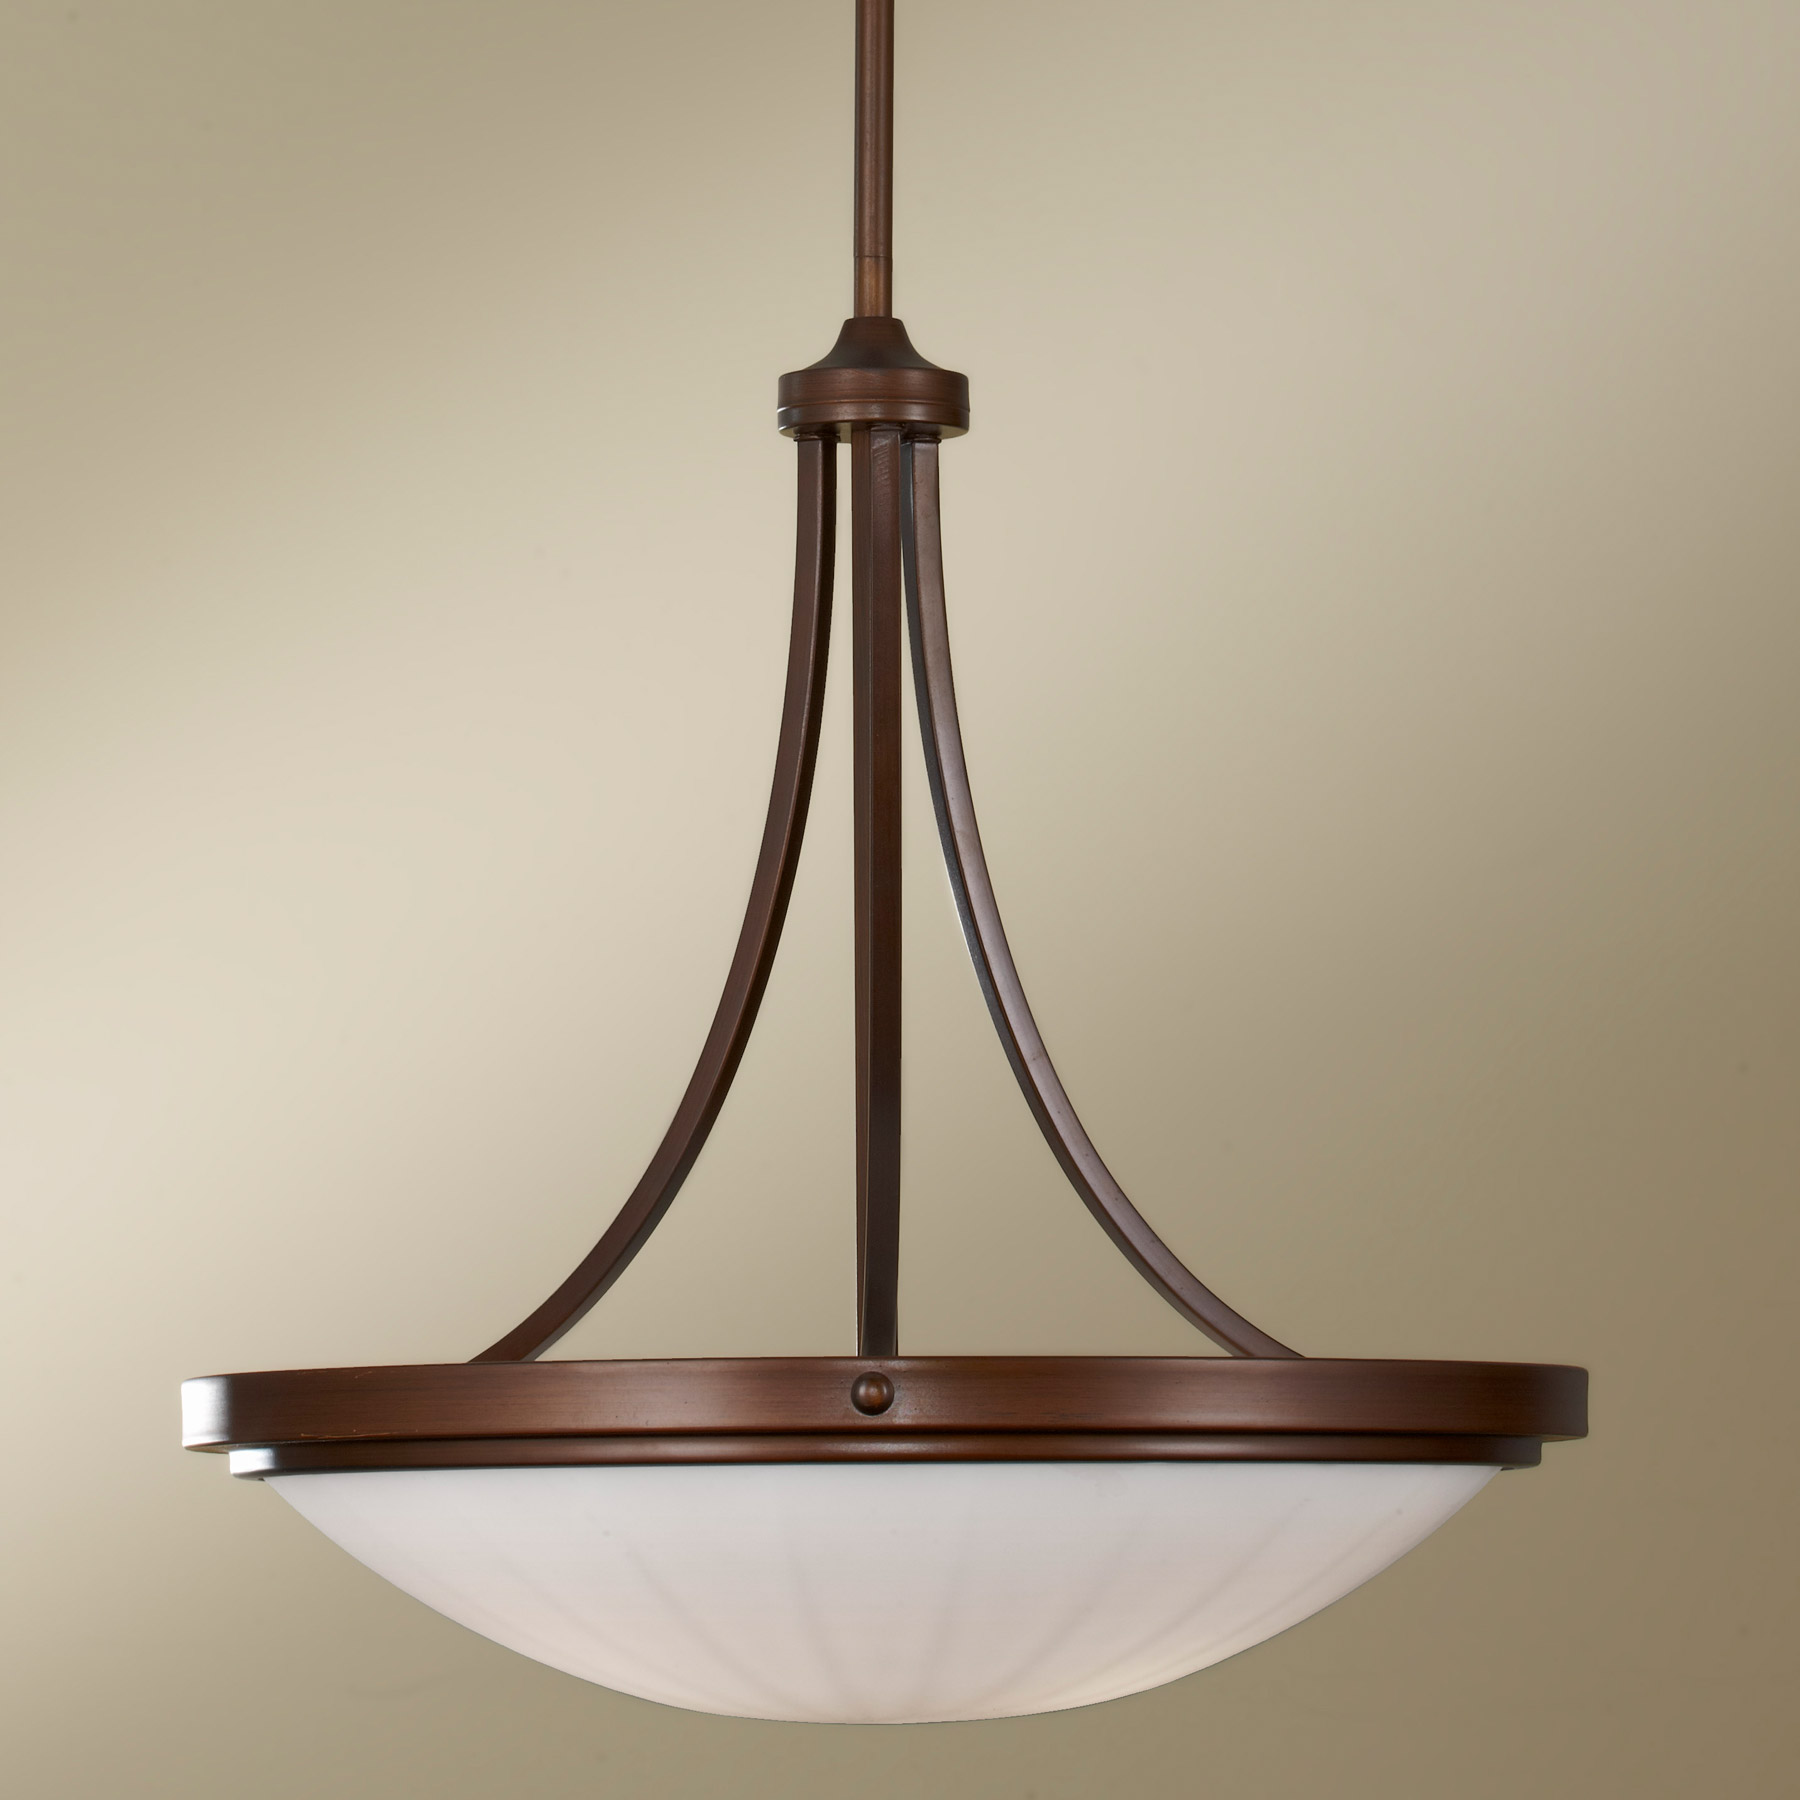 Murray feiss f2583 3htbz perry inverted pendant